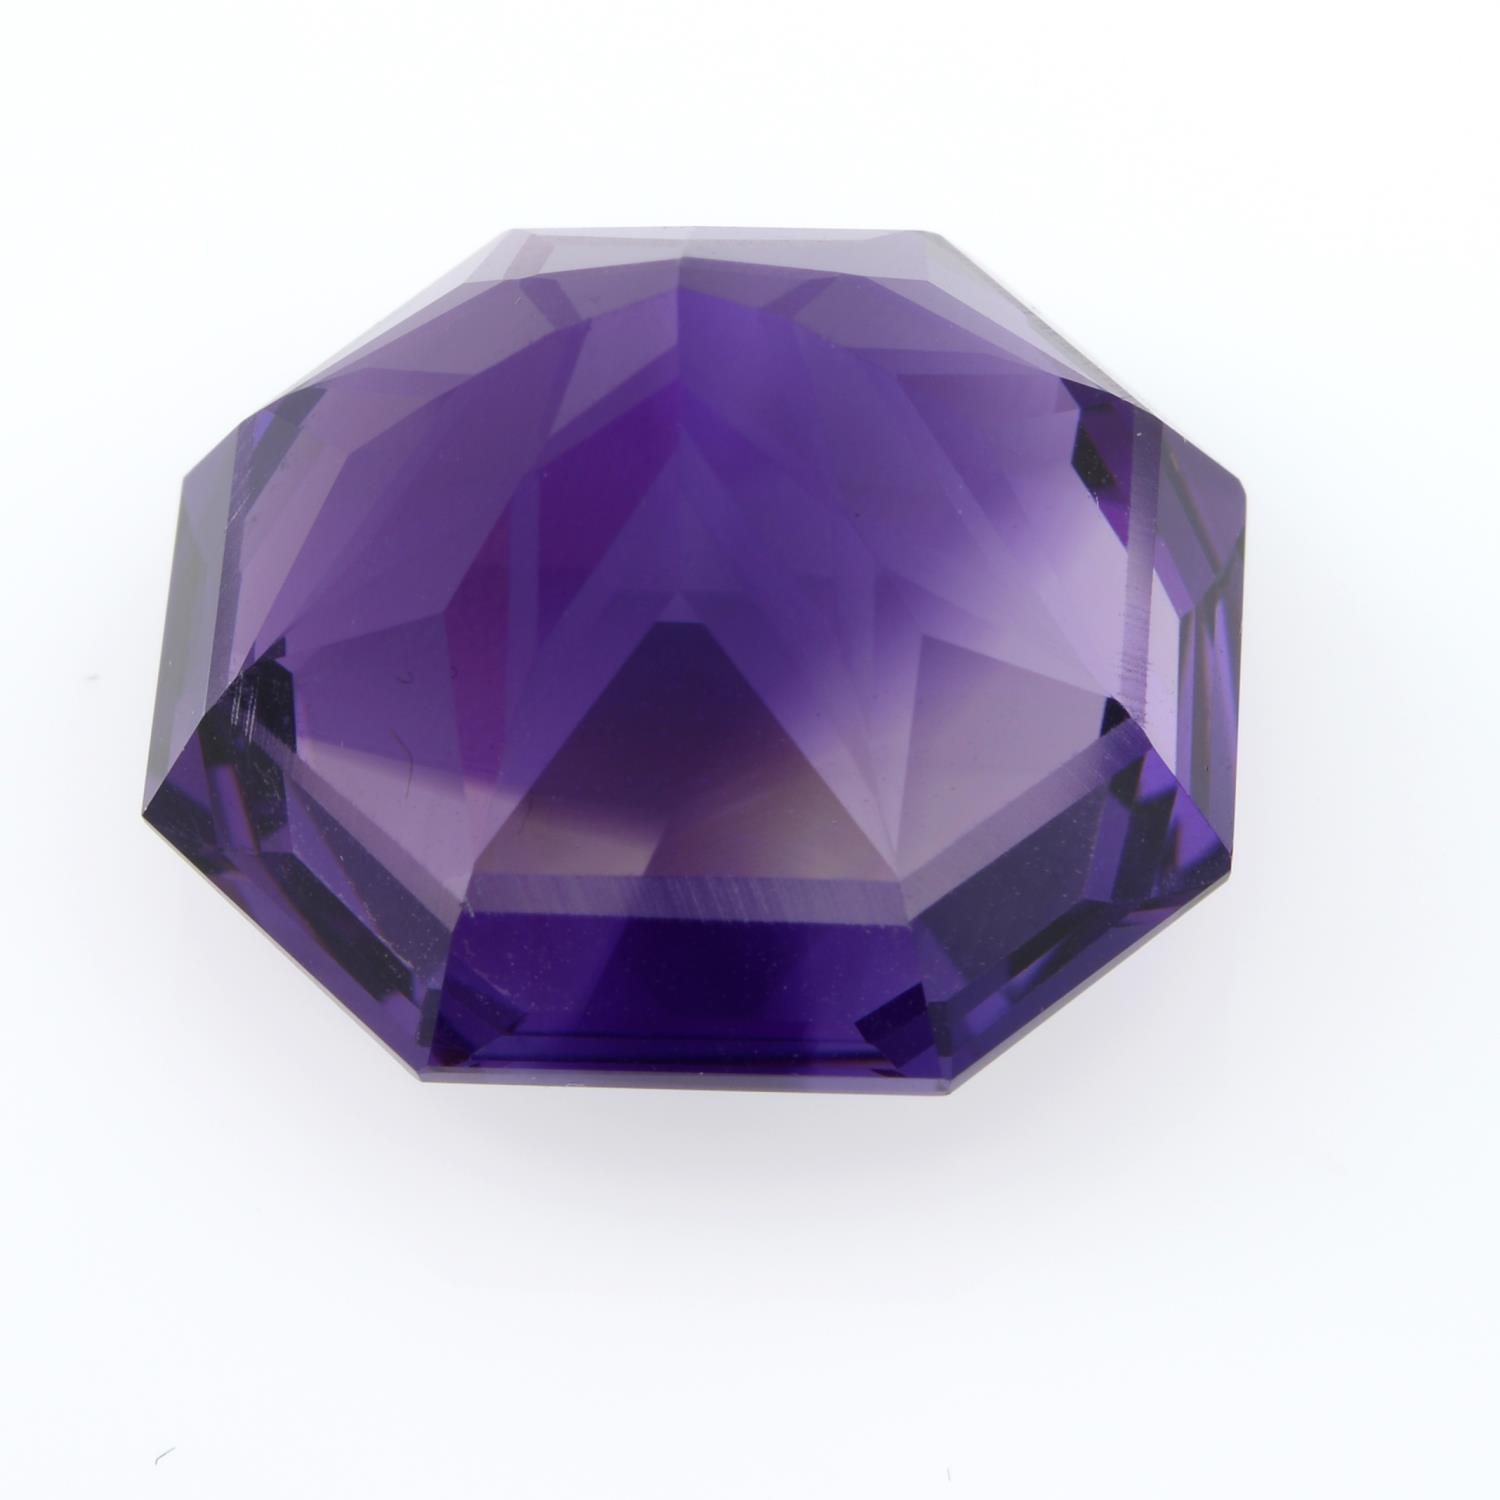 A fancy shape amethyst, weighing 41.25ct. - Image 2 of 3